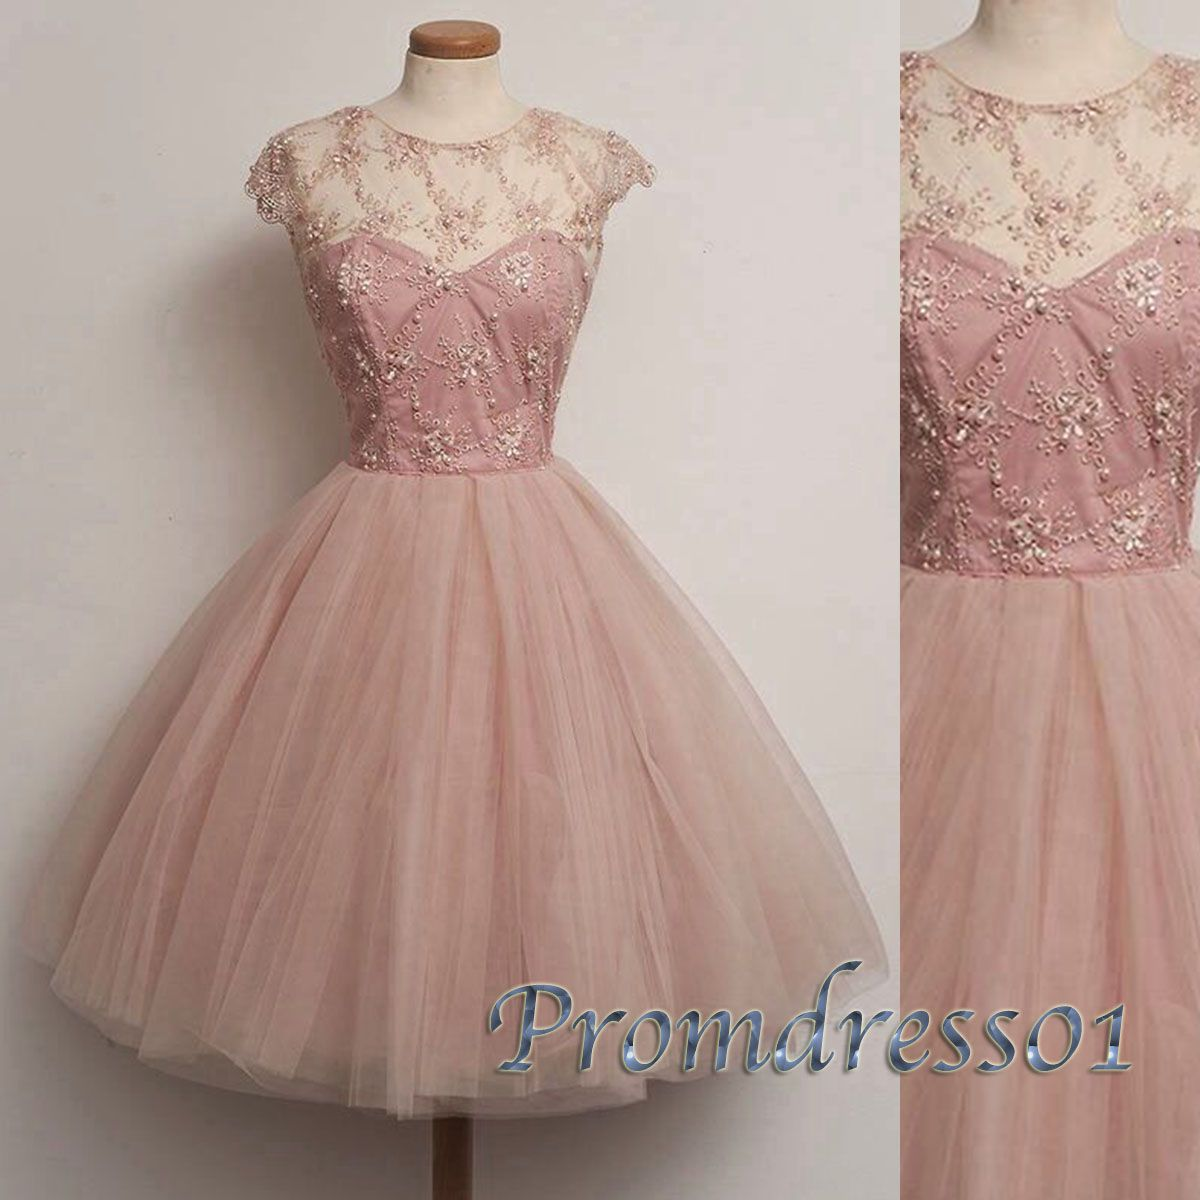 Pretty light pink tulle short party dress vintage prom dress for